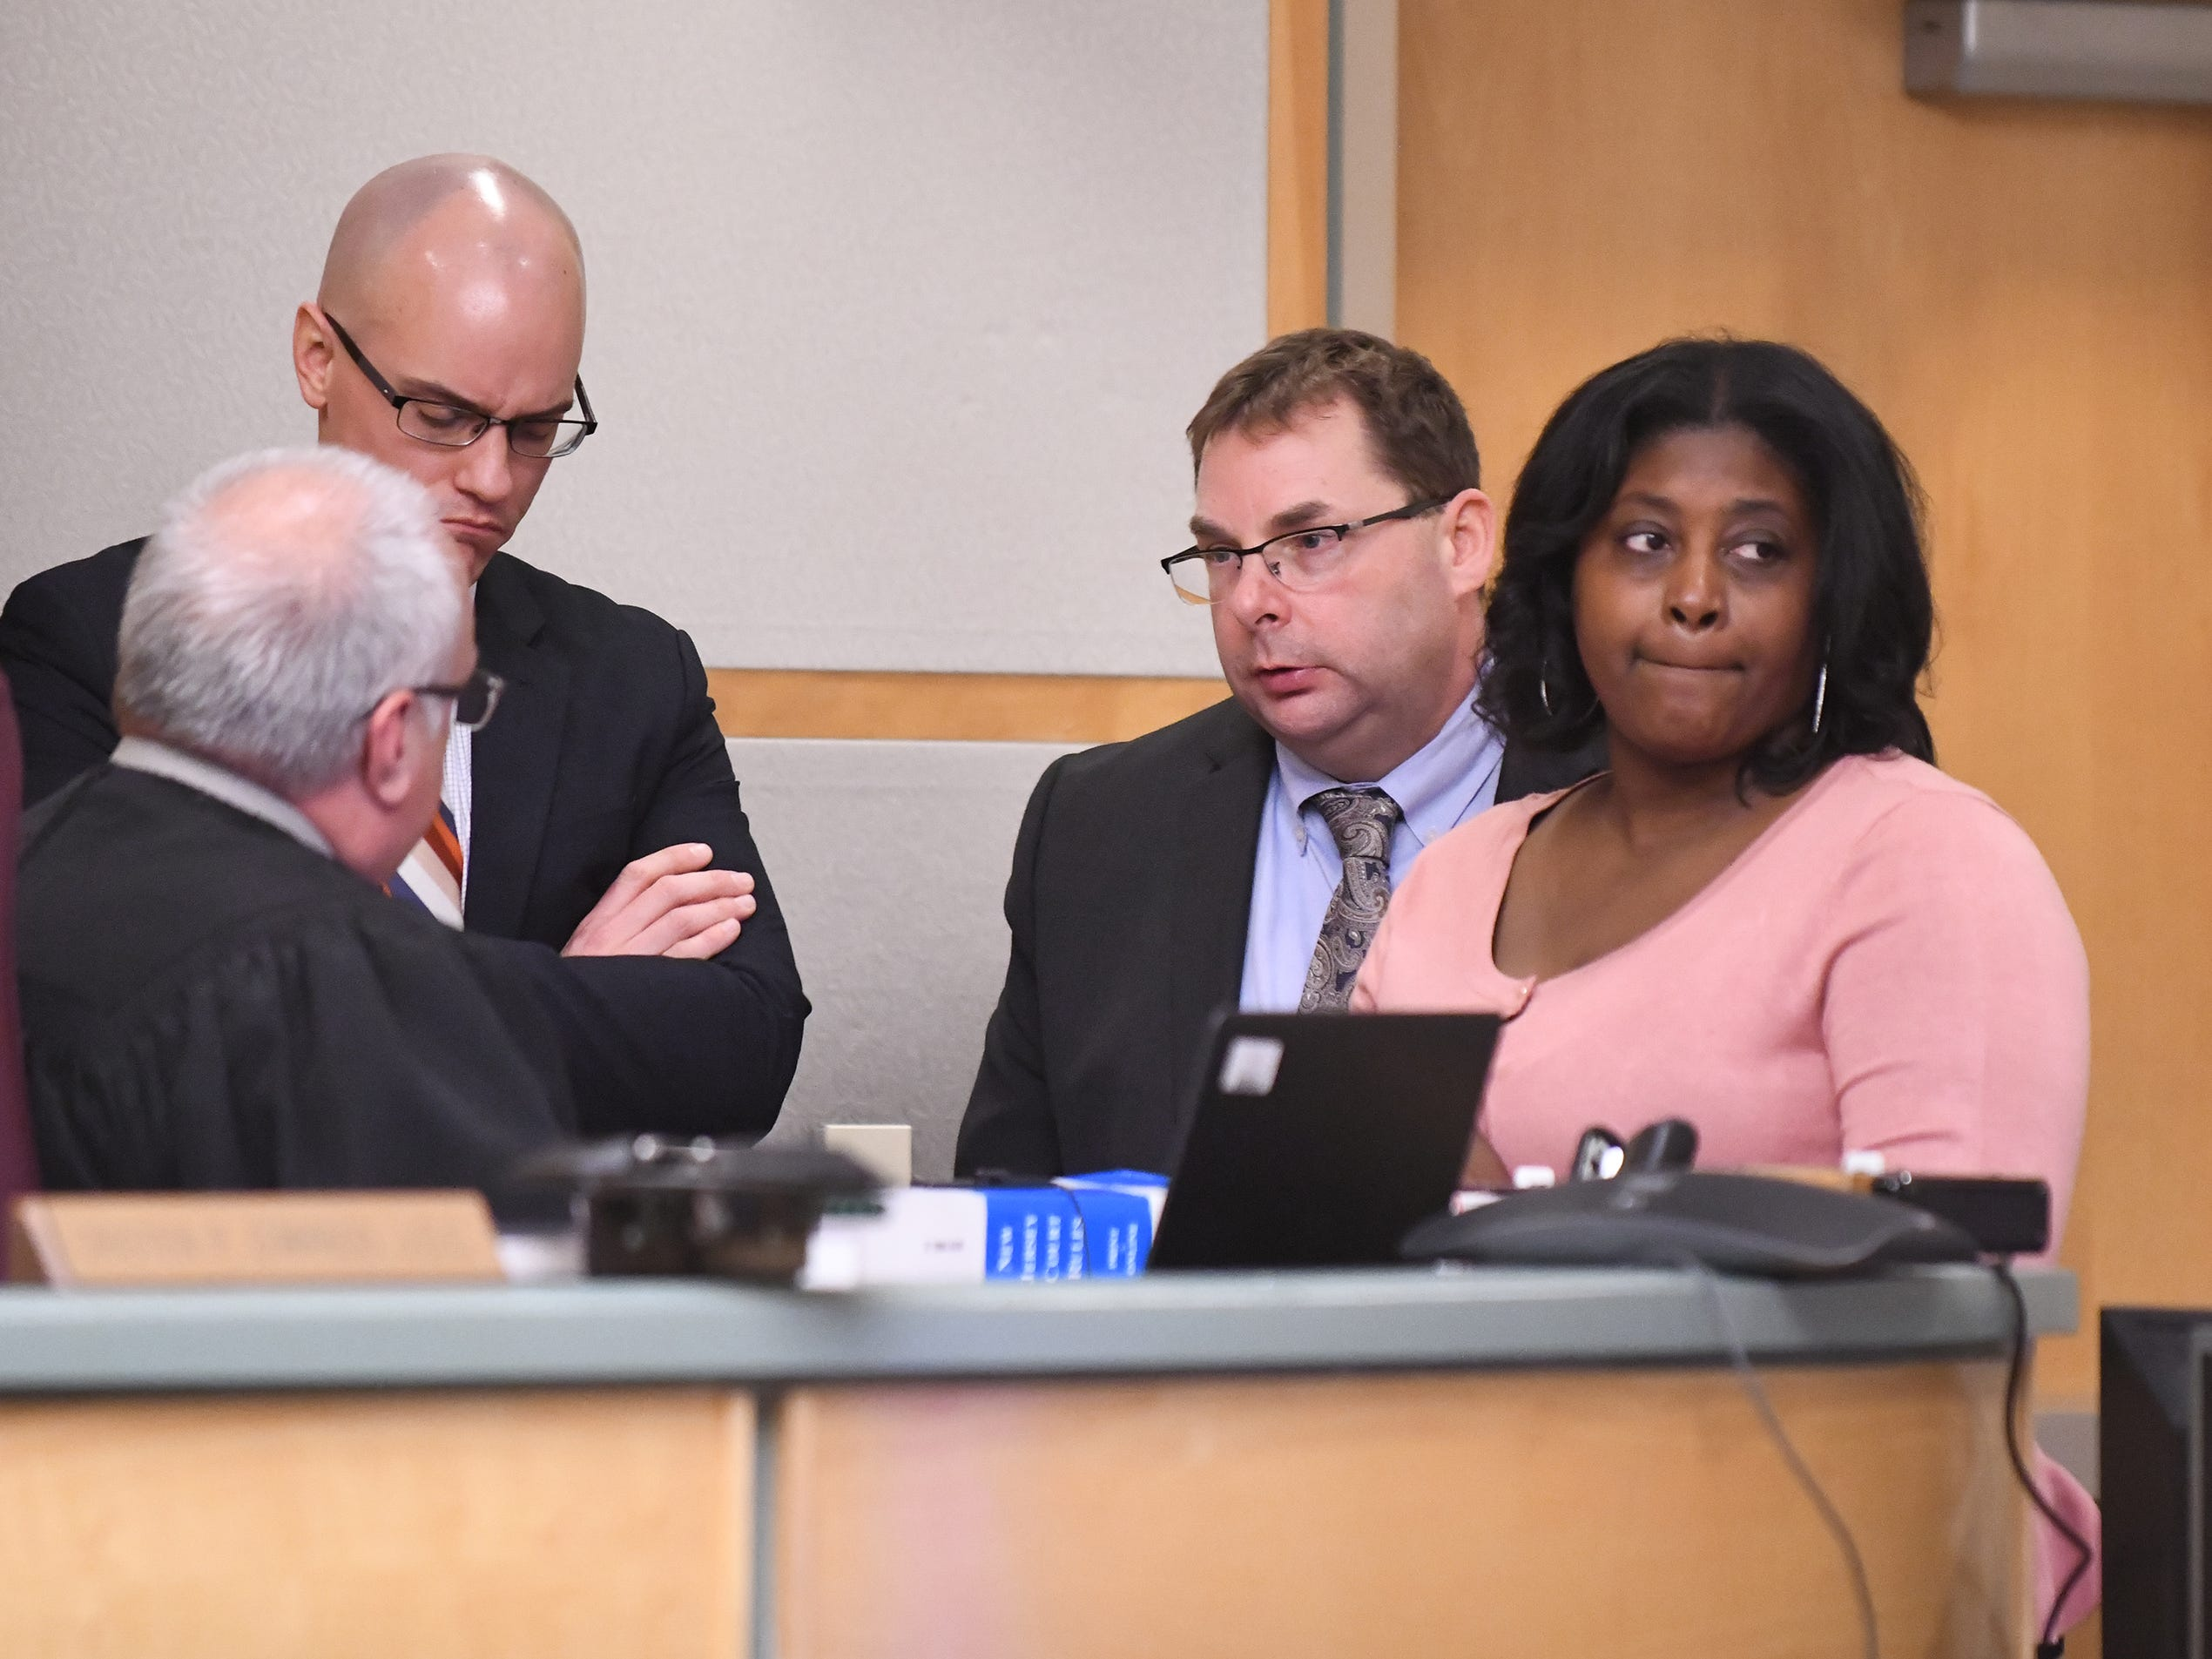 County Assistant Prosecutor Charles Wettstein (left) and defense attorneys Nathan Perry and JoEllyn Jones, listen to Judge Cristen D'Arrigo during the murder trial of Jeremiah E. Monell on Thursday, January 3, 2019.